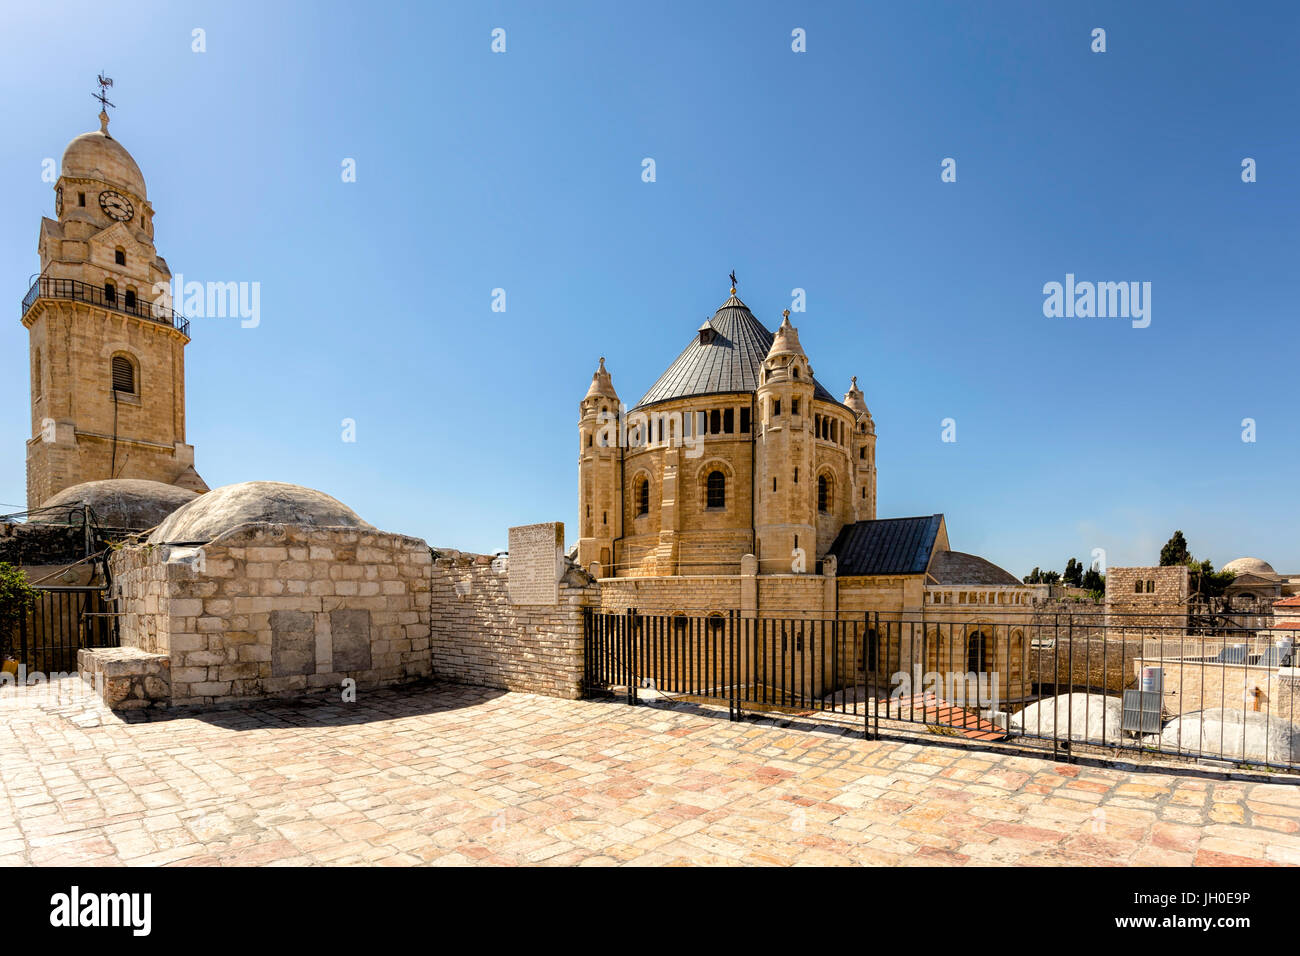 Dormition Abbey, viewed from the terrace of King David's Tomb, in the Armenian Quarter of Jerusalem, Israel. - Stock Image